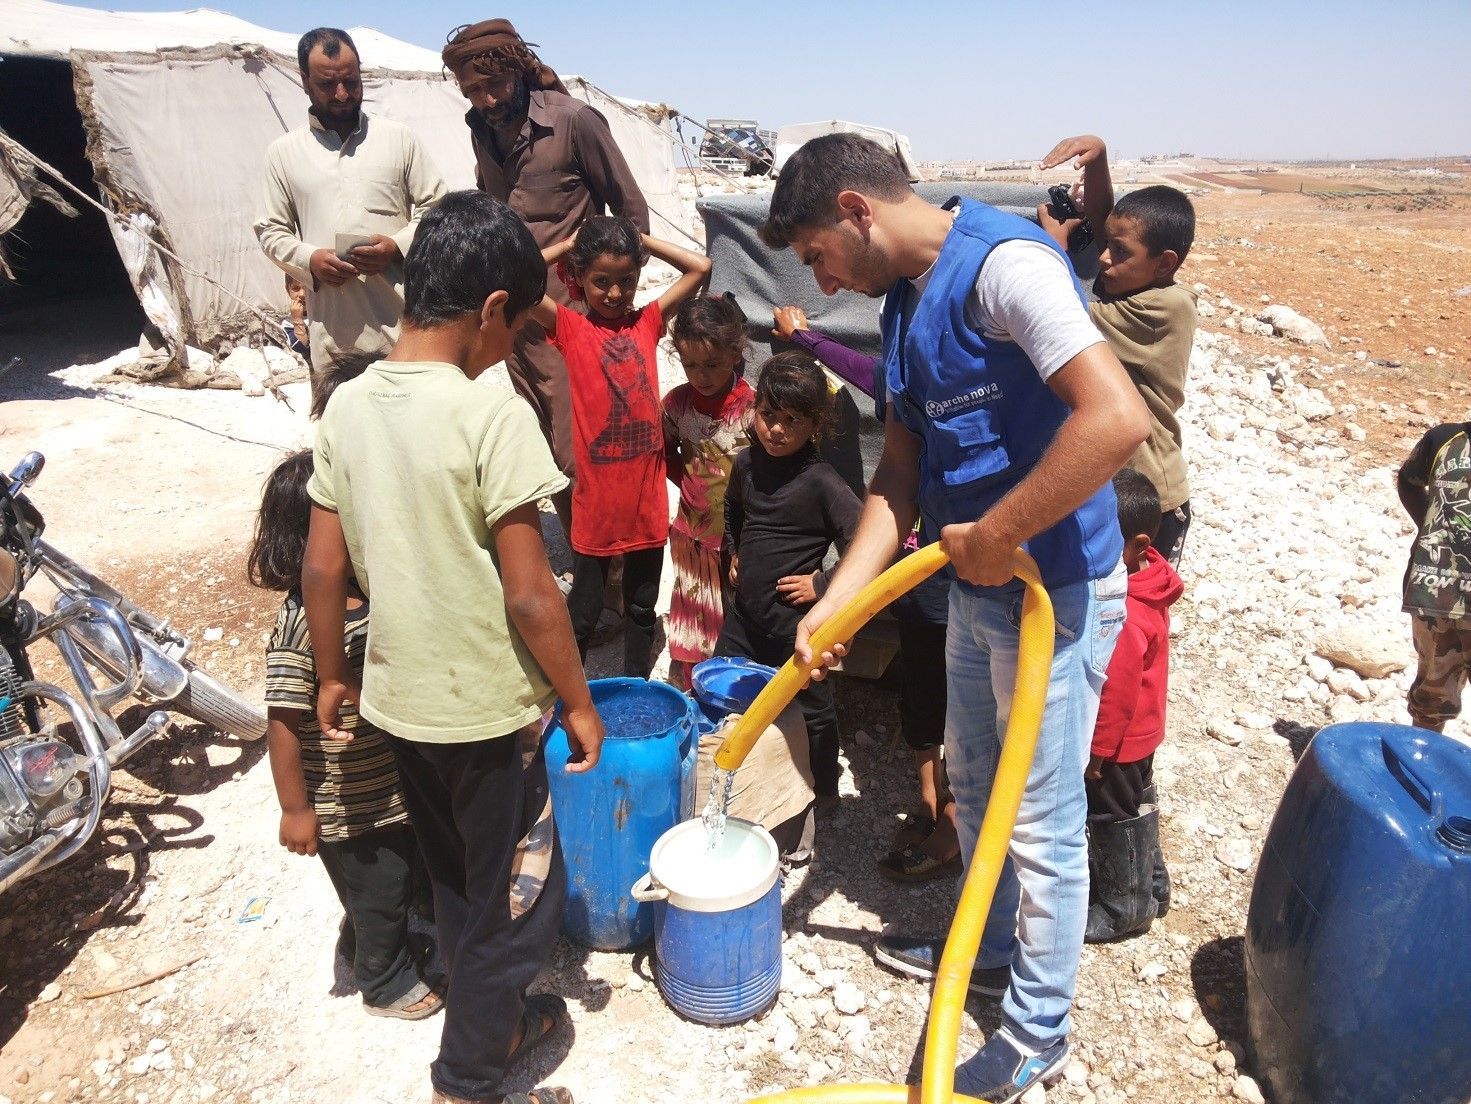 An employee of arche noVa fills buckets and containers with water, children are waiting and watching, there are tents in the background